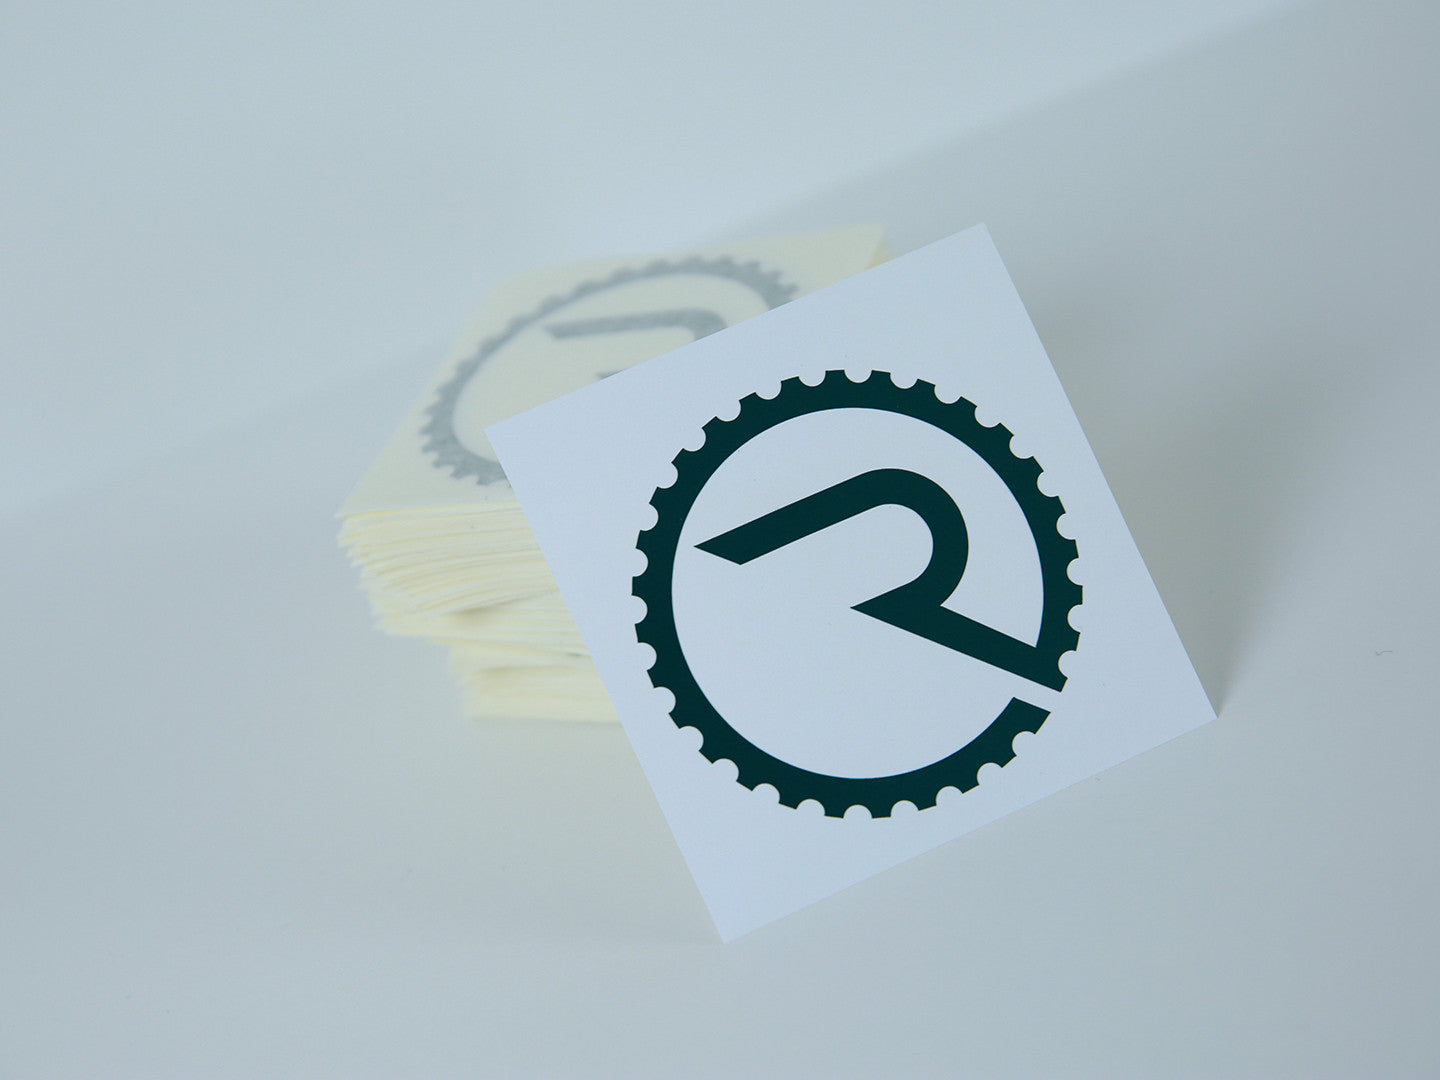 Geared R Decal - Reflective Green - Ride Apparel Co.